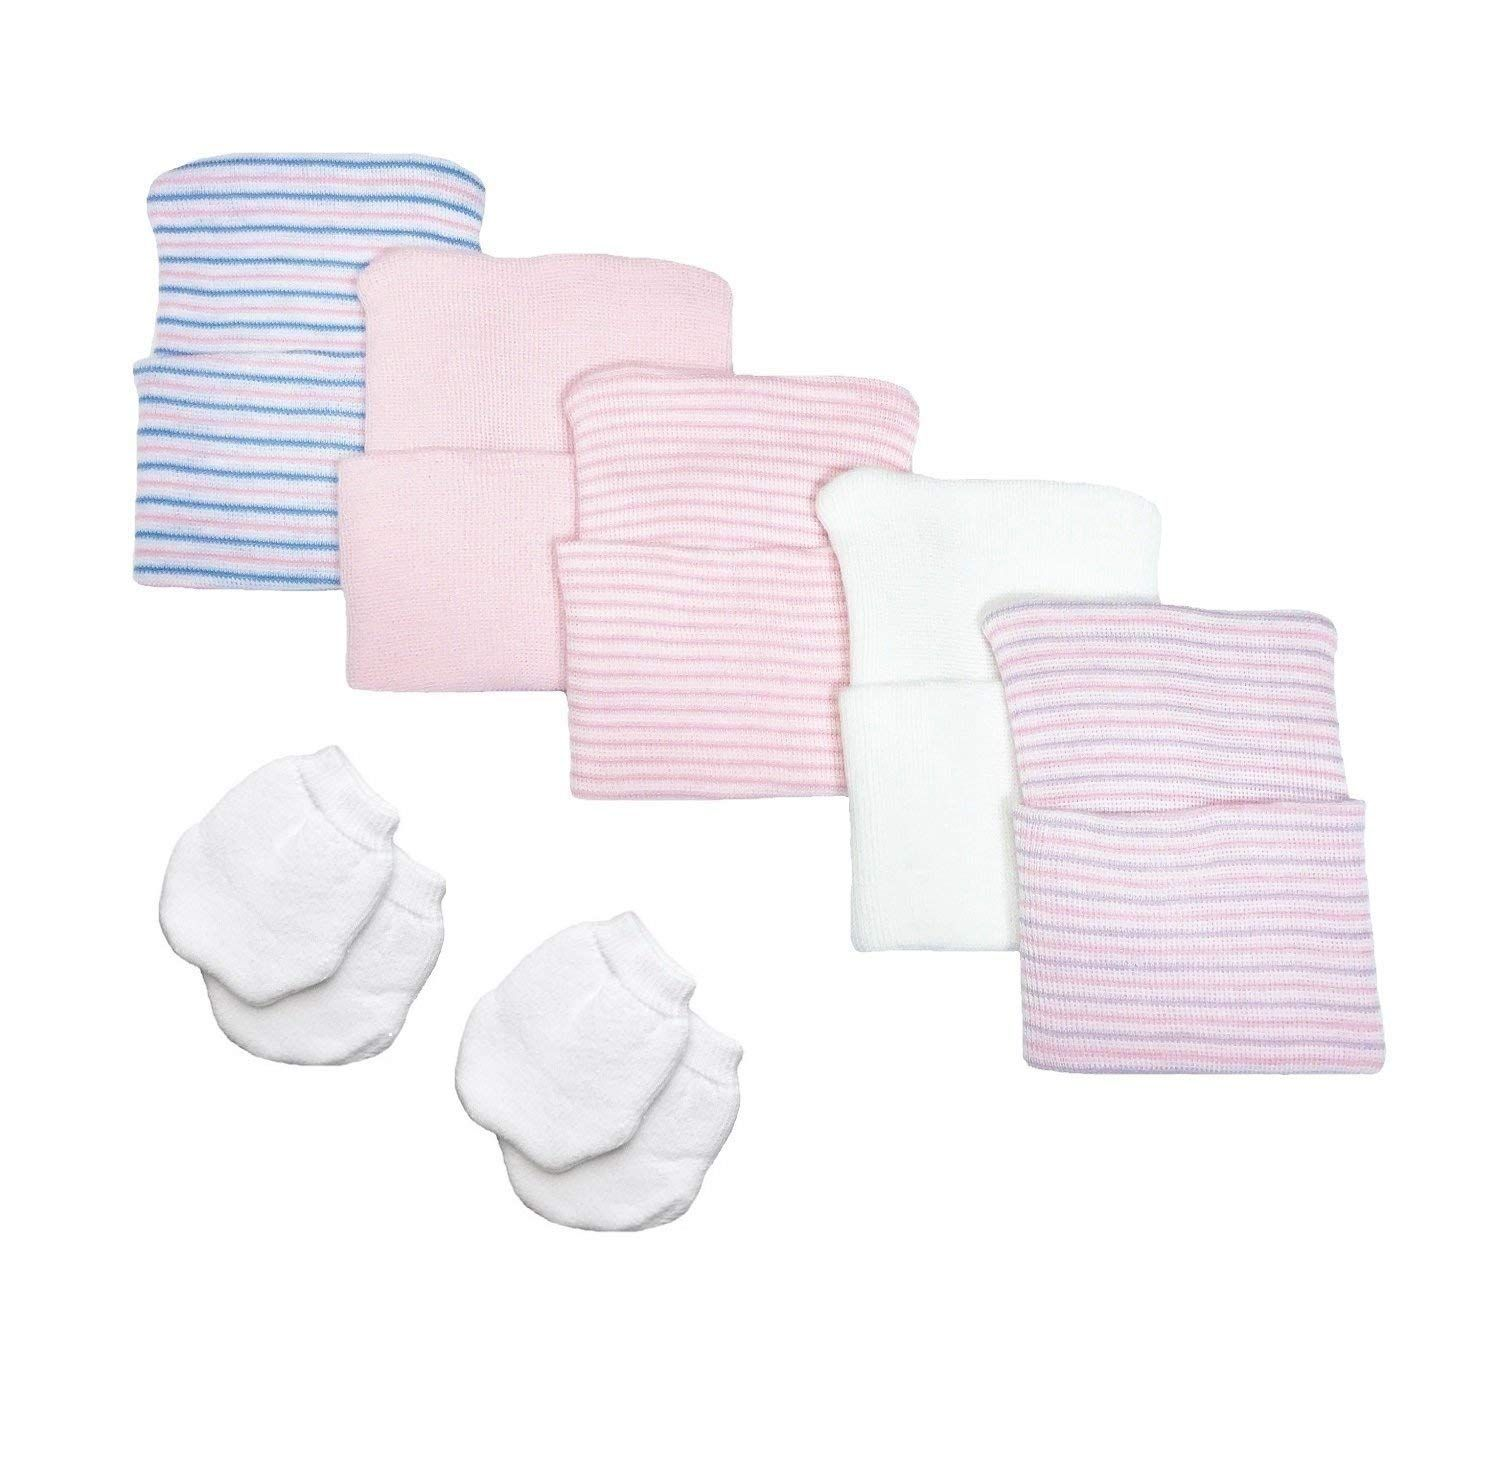 White Newborn Baby Mittens By Nurses Choice Includes 6 Pairs Of No Scratch Cott